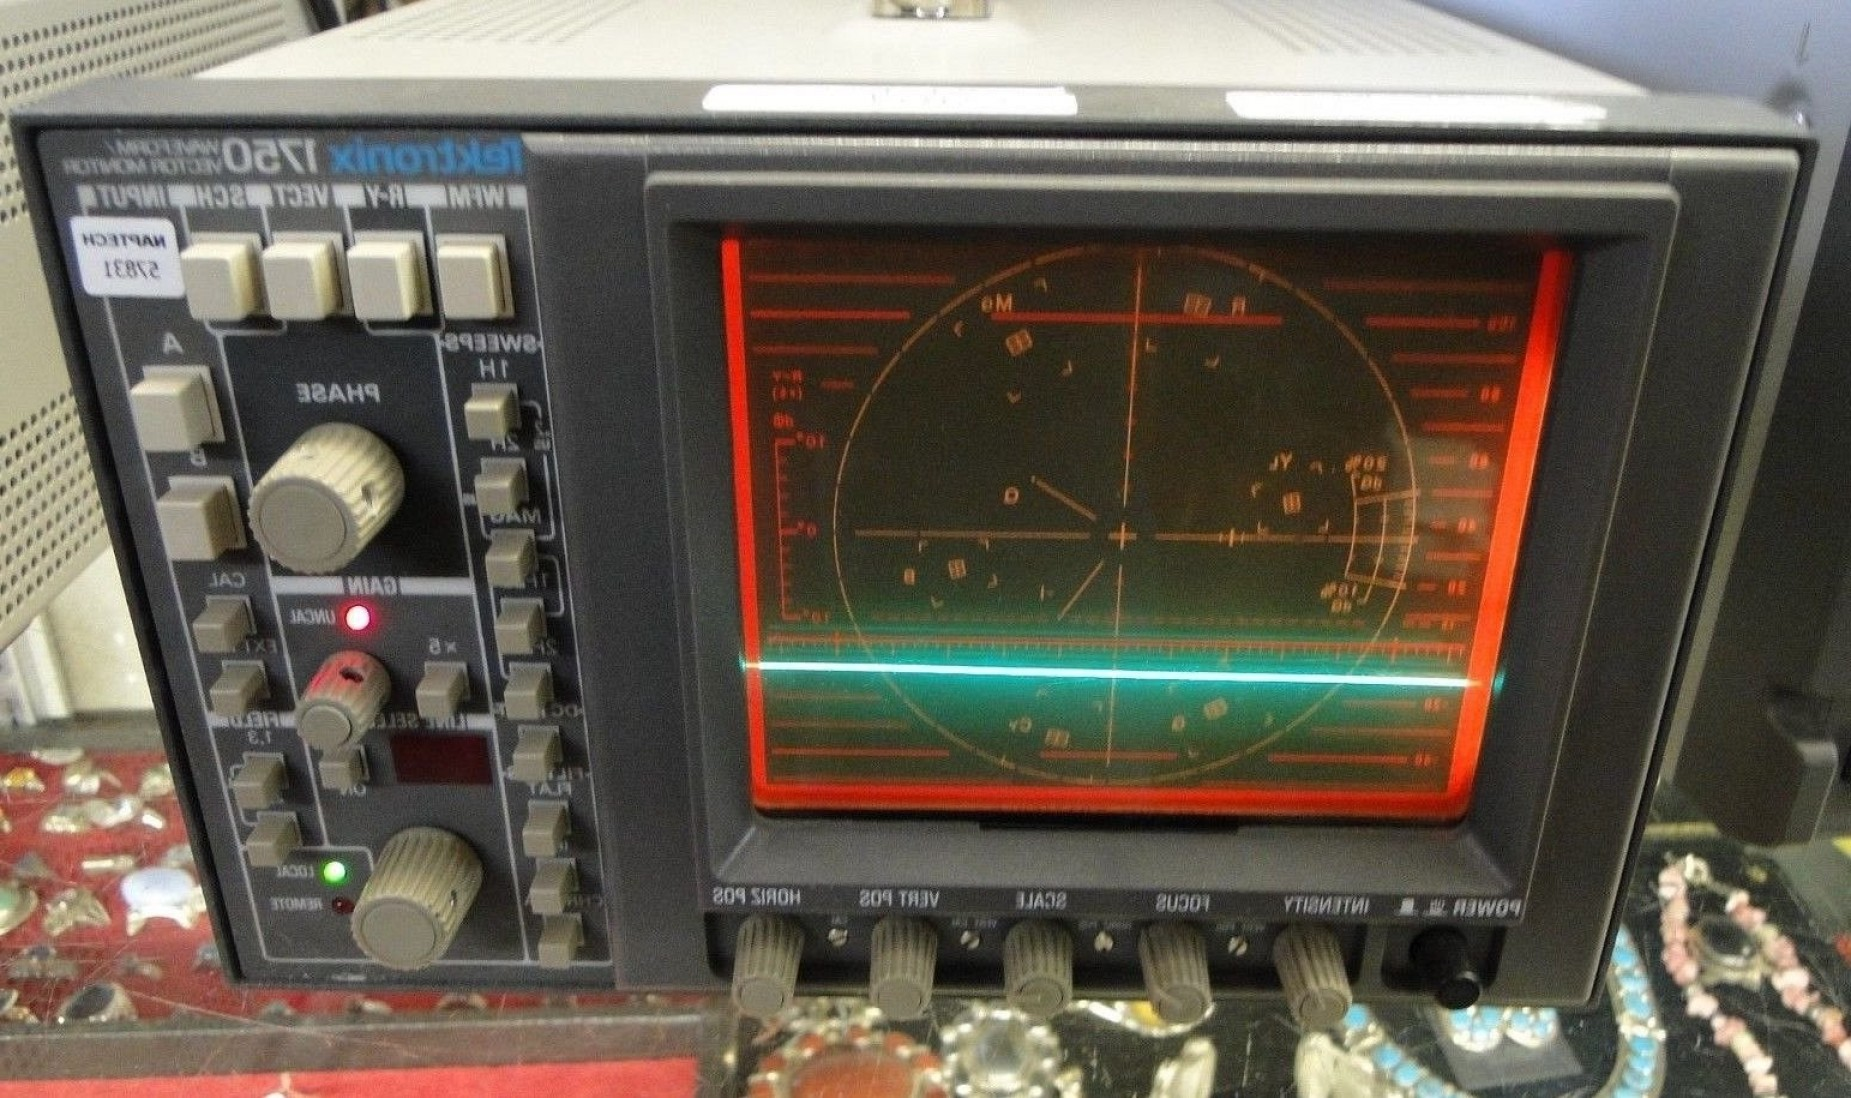 Vectorscope Analyzer: Tektronix Waveform Vector Scope Monitor Electrical Test Equipment V